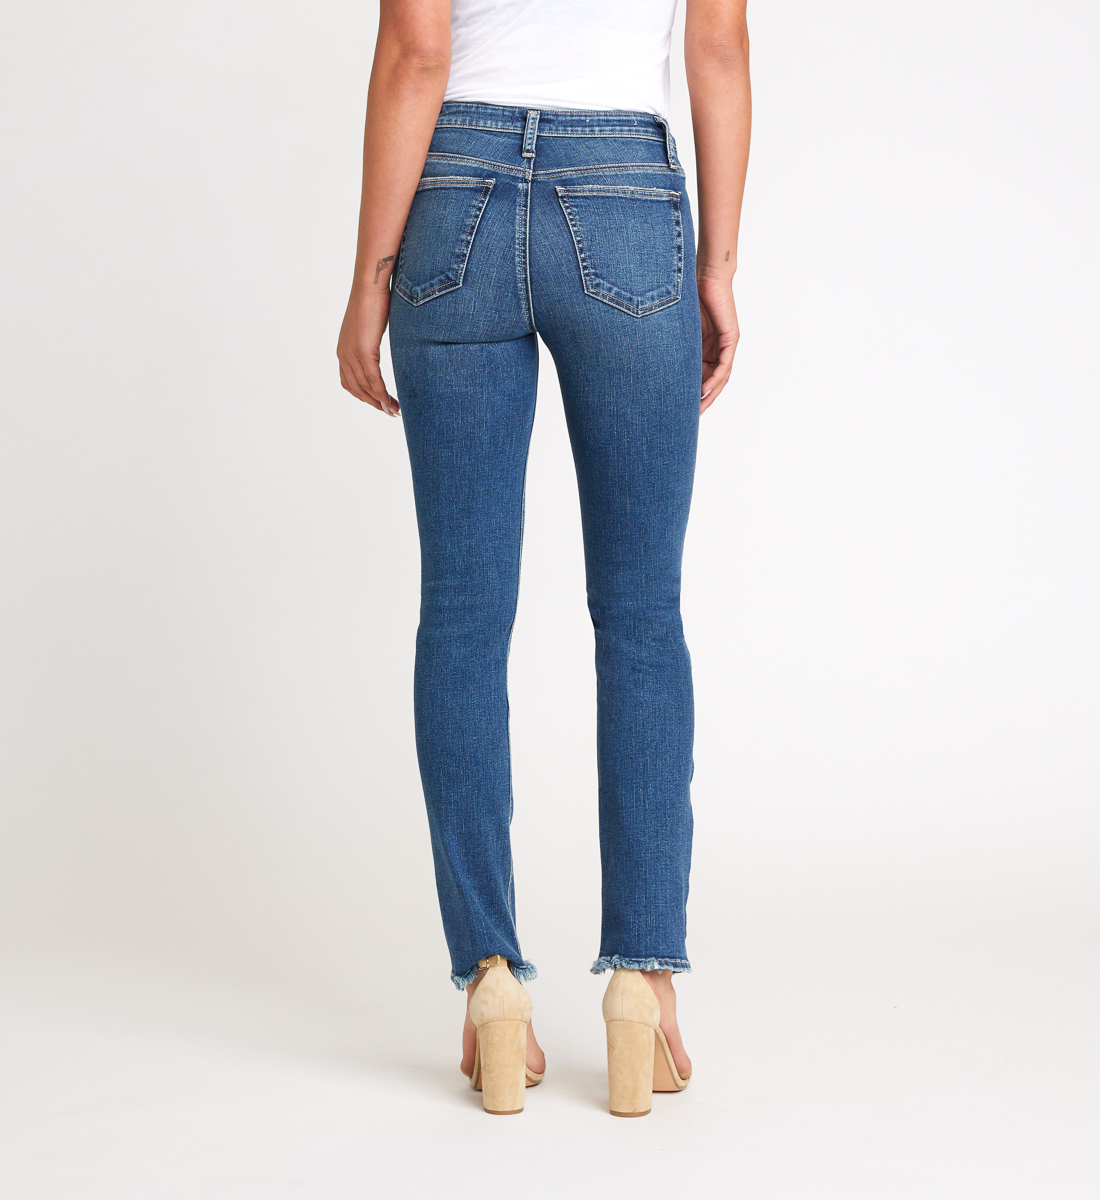 High Note High Rise Slim Leg Jeans Back